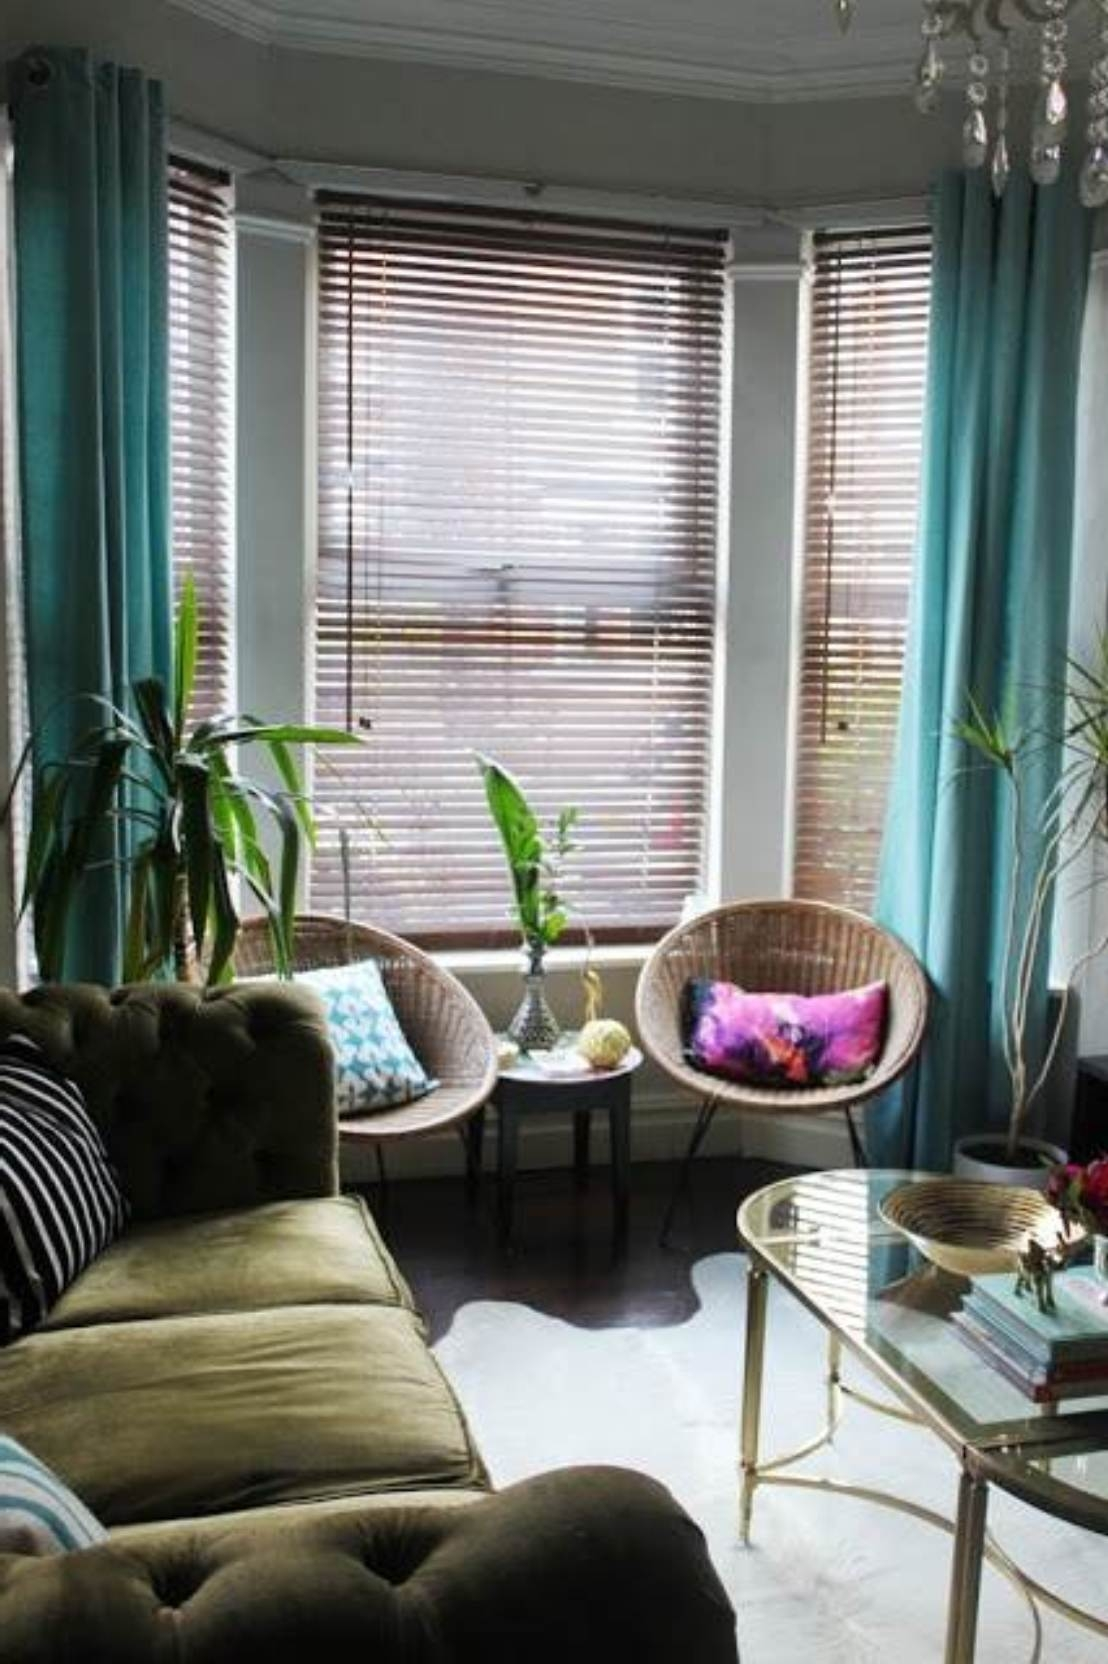 Ideas For Bay Window Decorating Home Pinterest I Am Window In Front Room Blinds (Image 9 of 15)